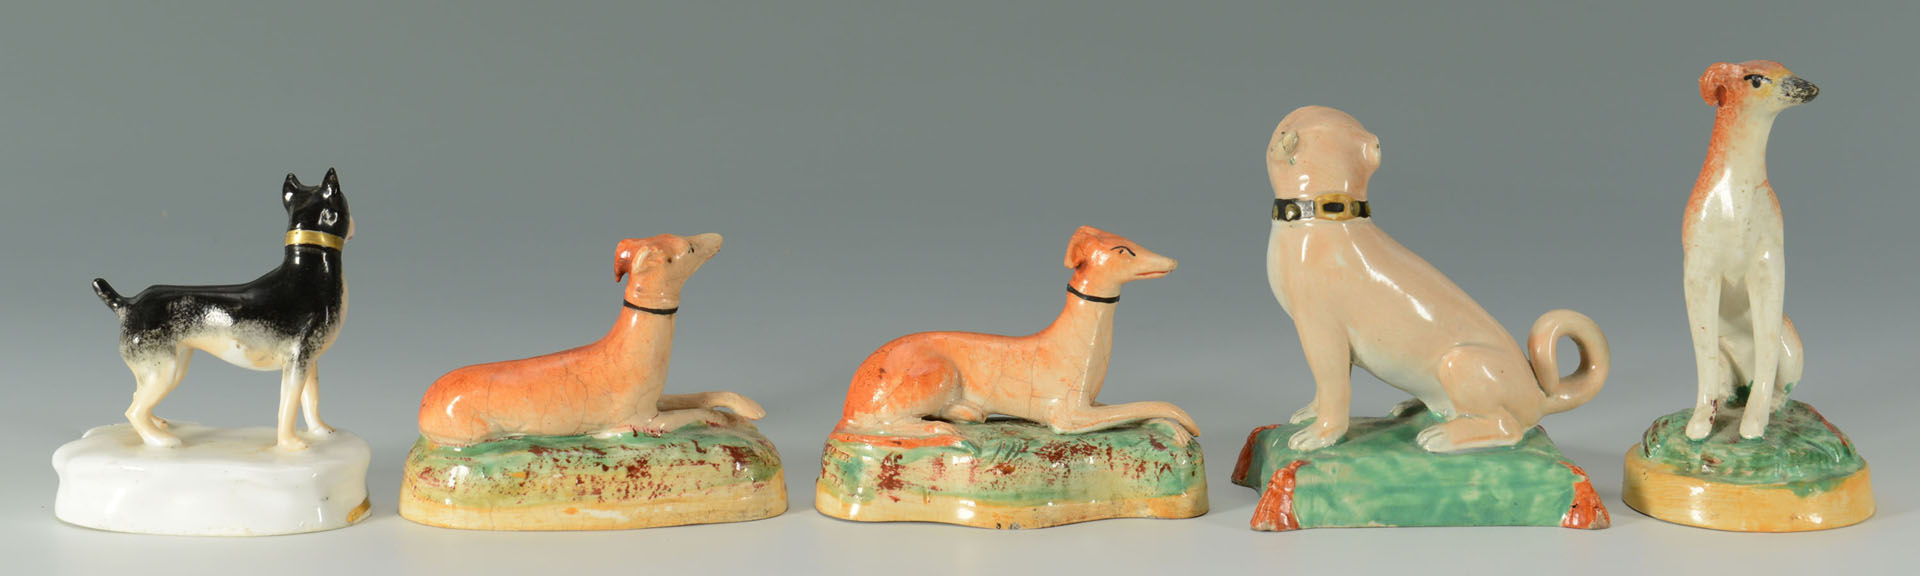 5 English Dog figurines